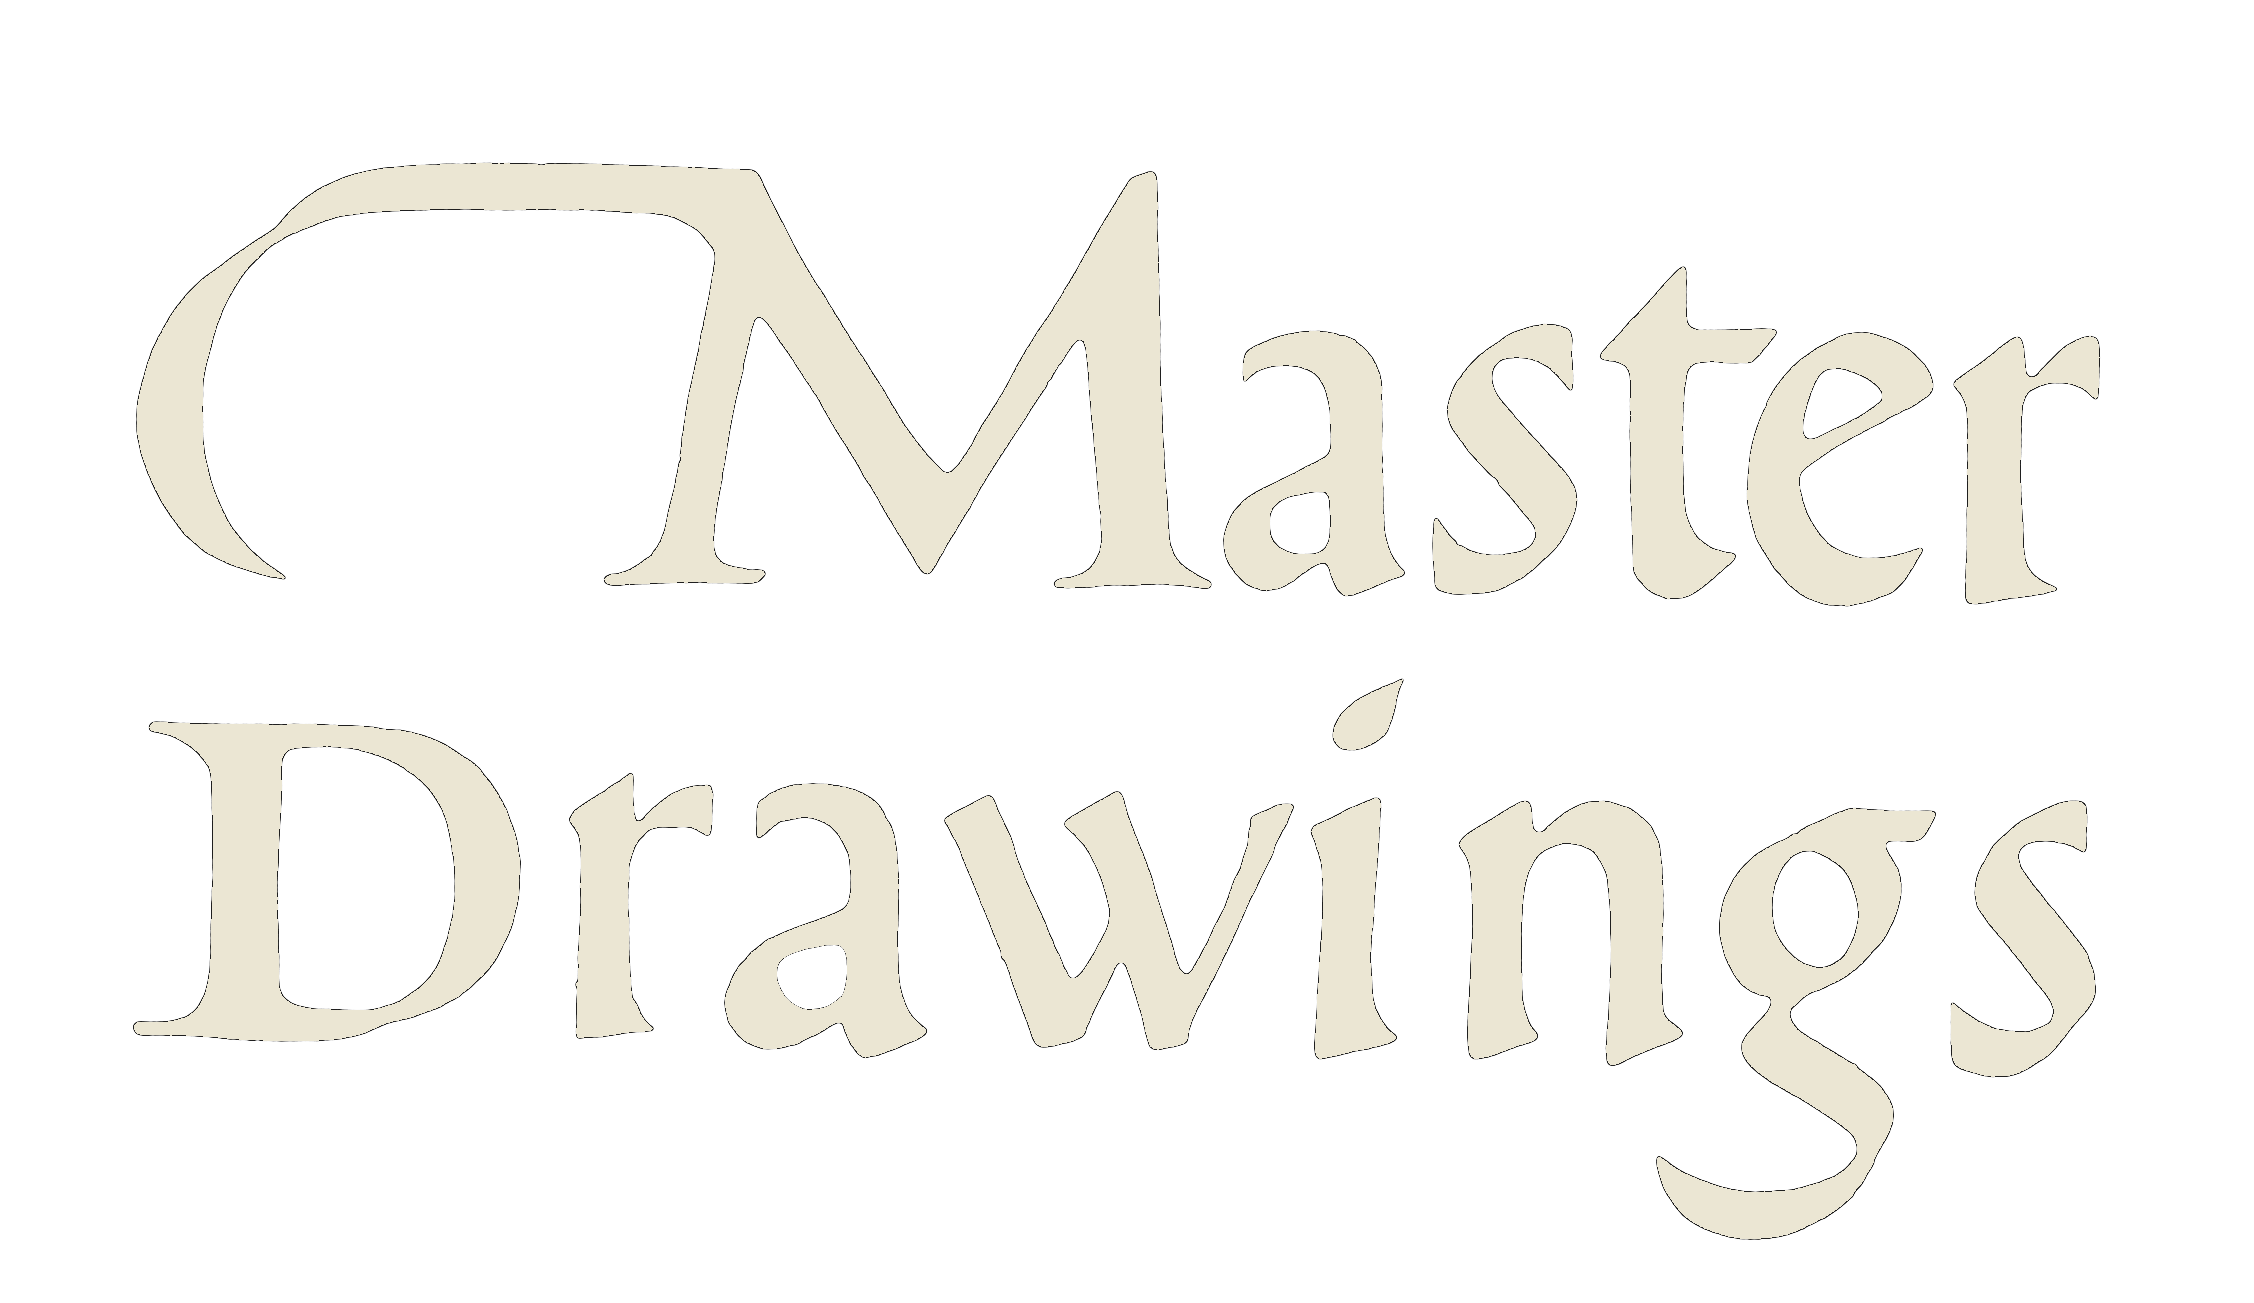 Drawing master. Drawings a quarterly published